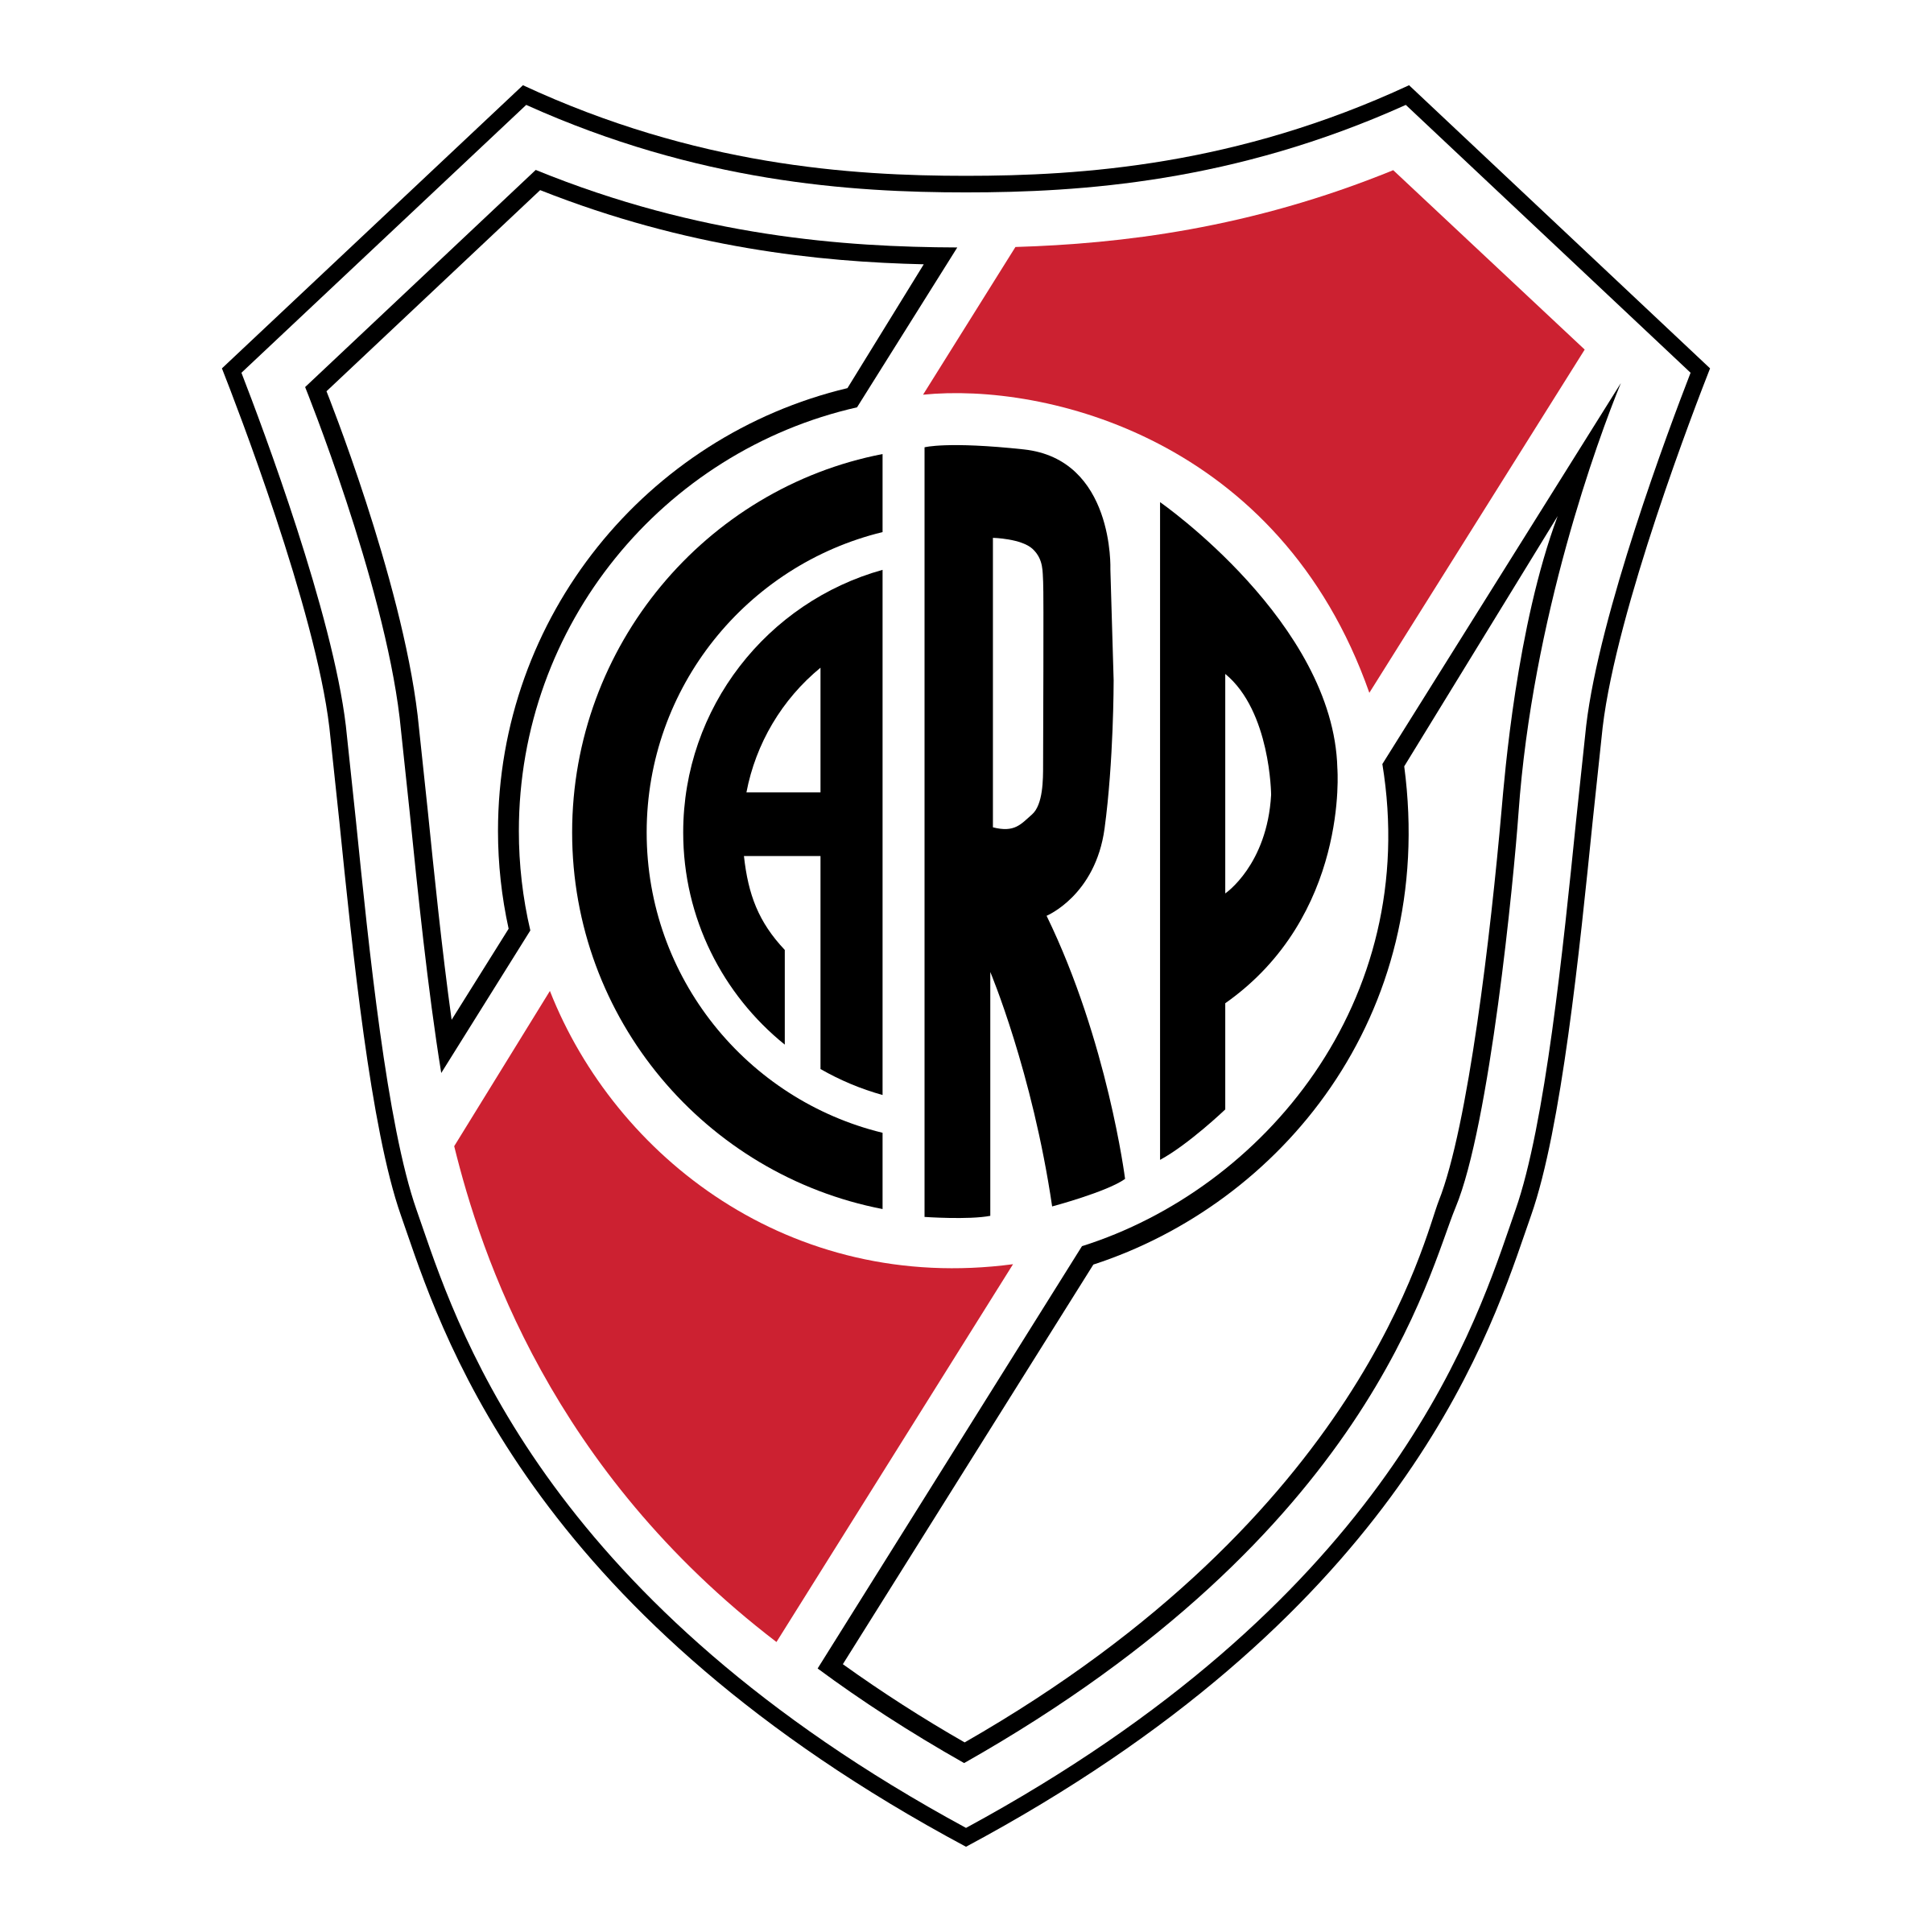 Club vector modern. Atletico river plate logo